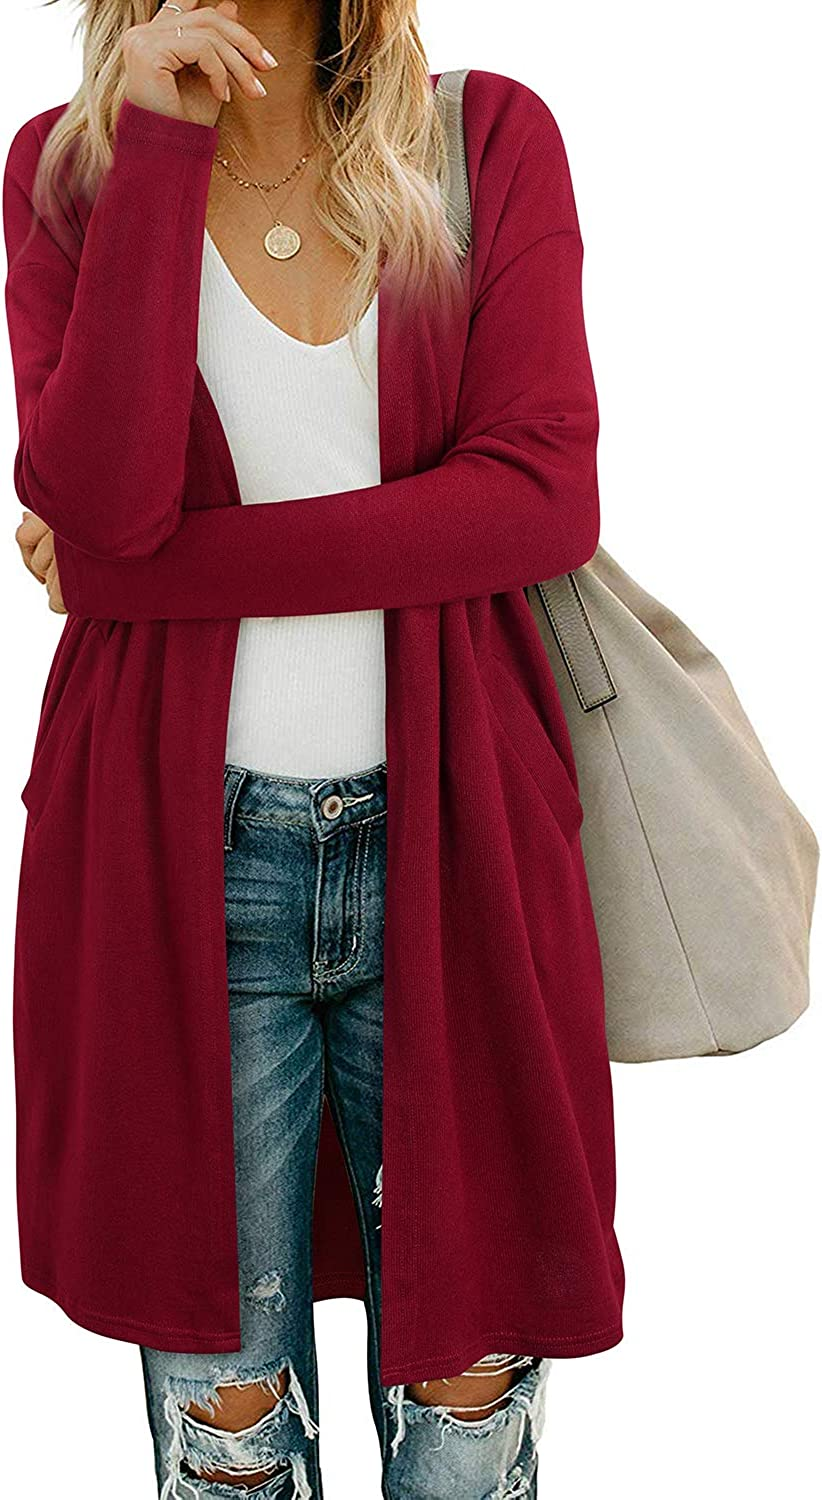 OUGES Womens Open Front Cardigan Shirt with Pockets Long Sleeve Lightweight Coat